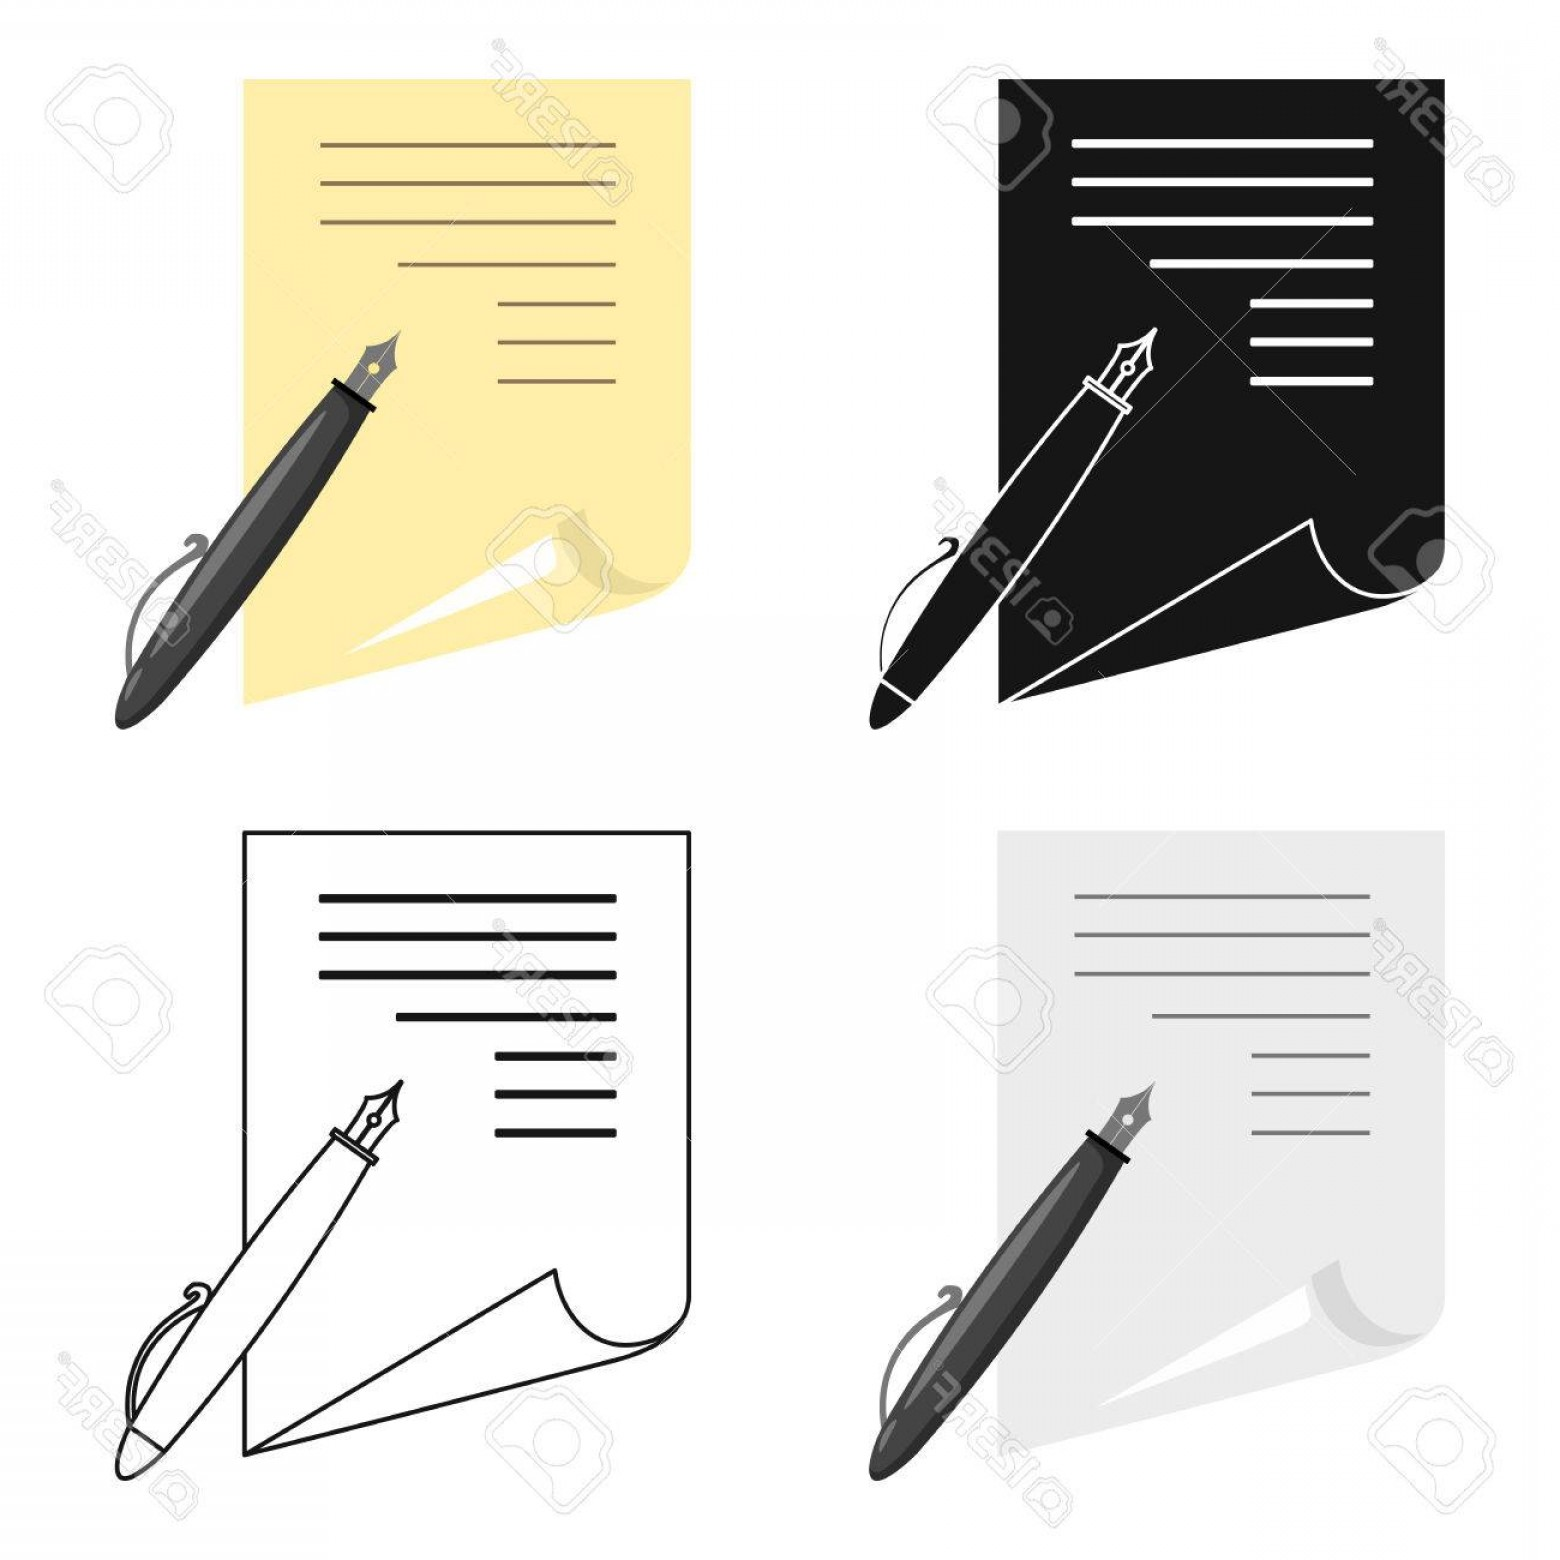 Paper And Pencil Icon Vector: Photostock Vector Paper And Pen Icon Cartoon Single Education Icon From The Big School University Cartoon